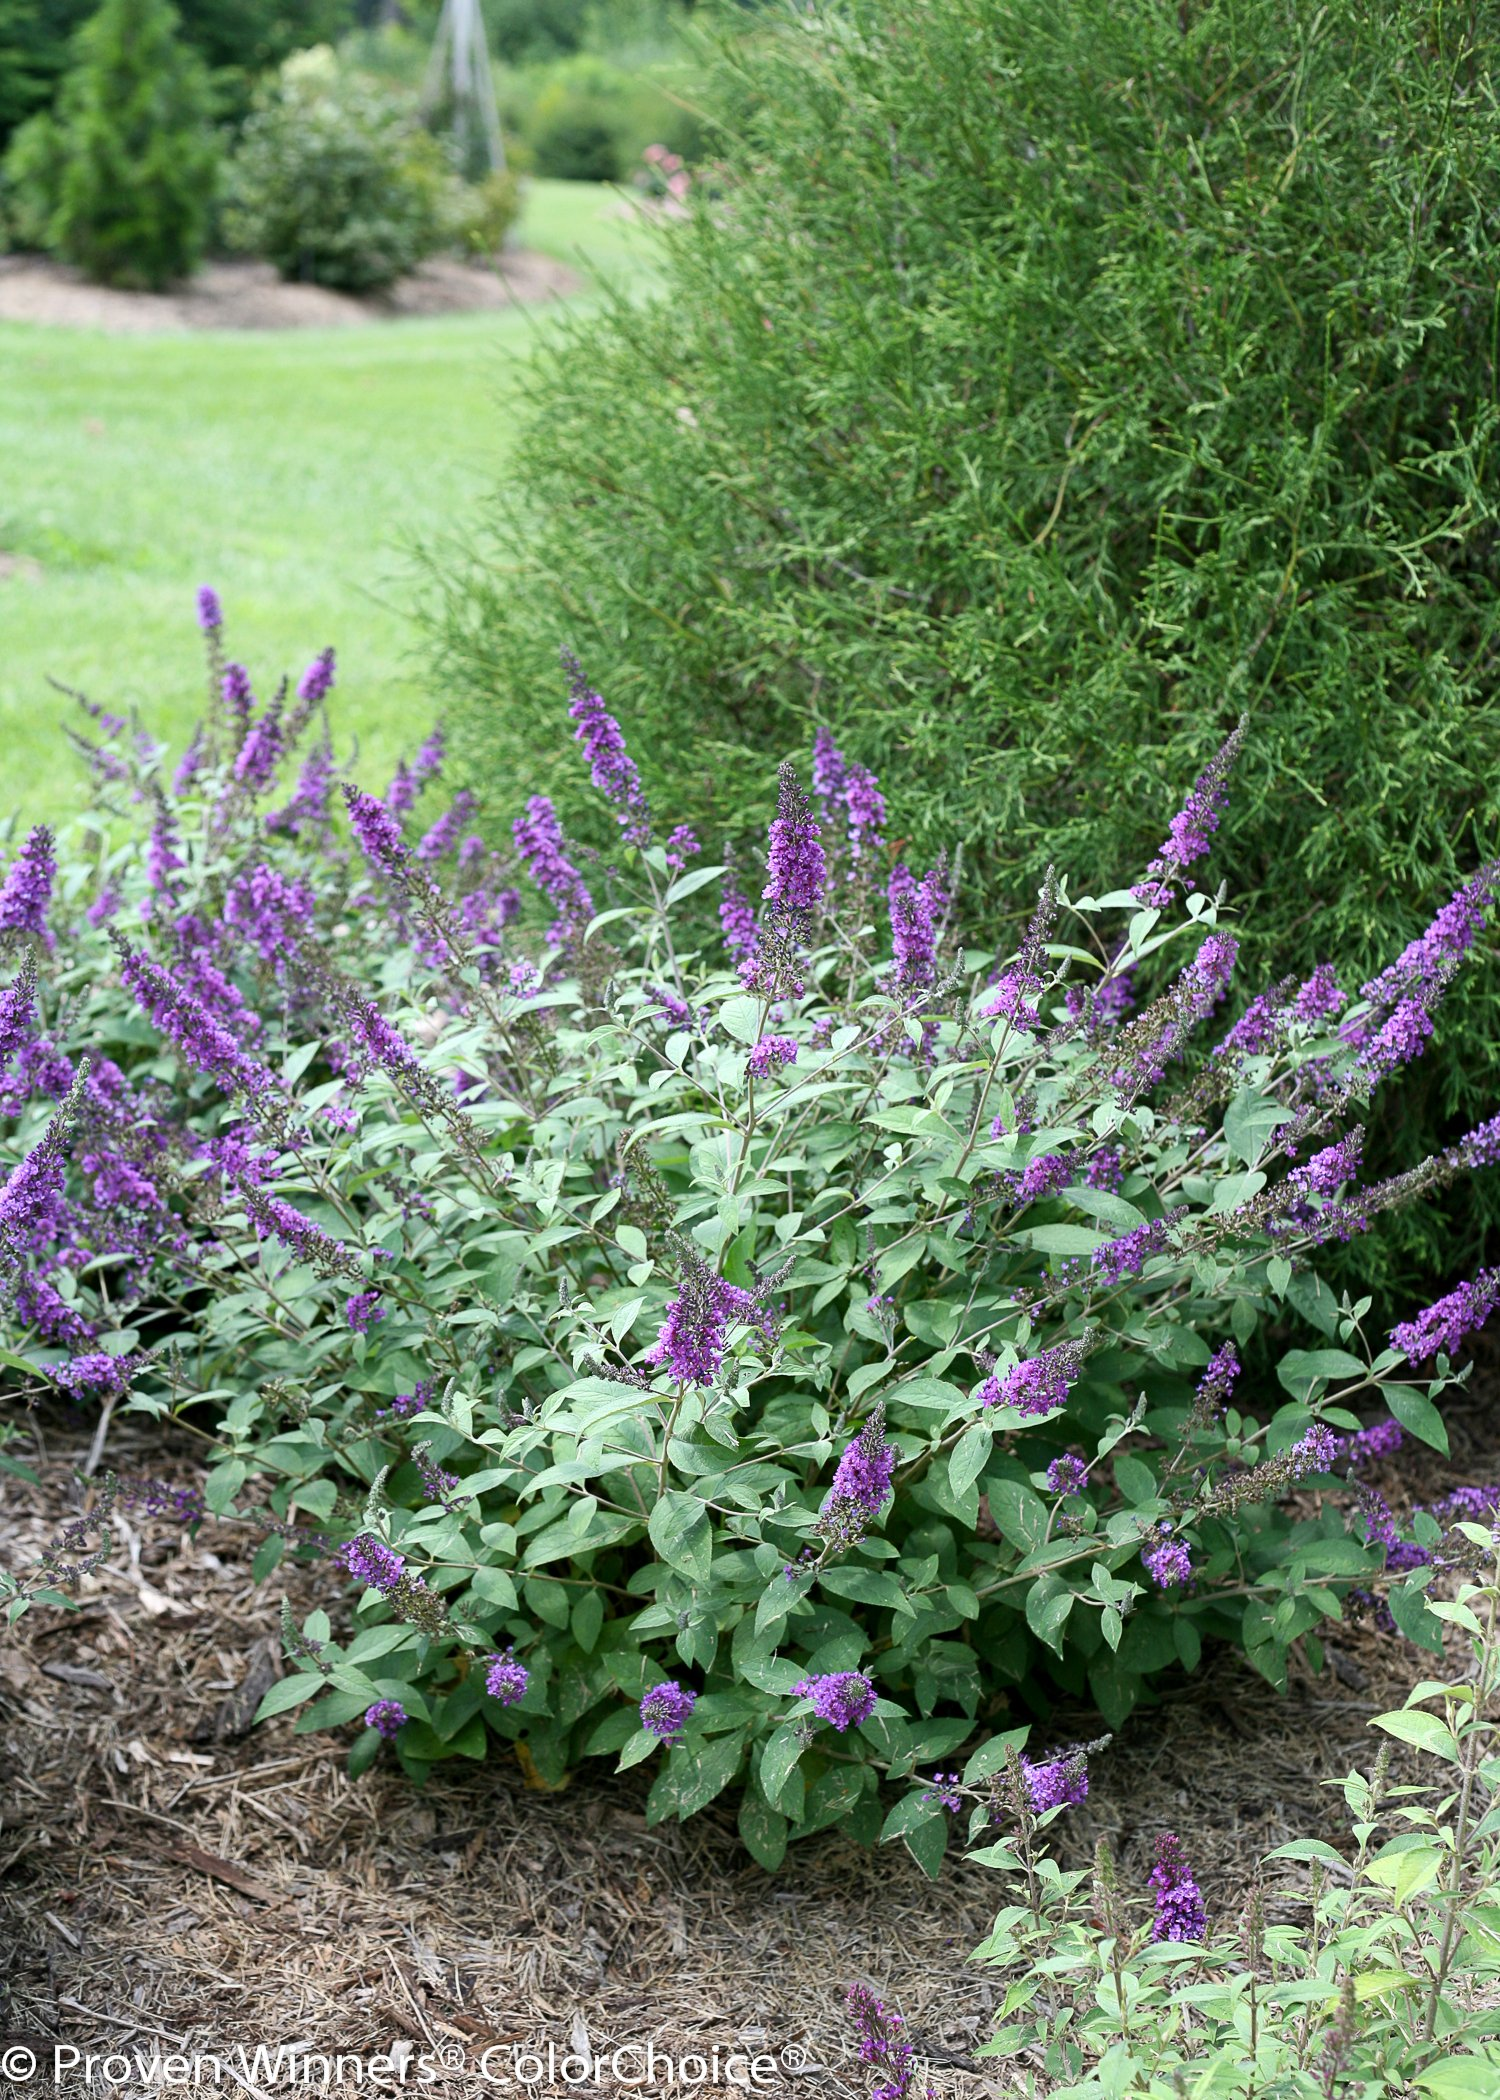 1 Gal. Lo & Behold 'Blue Chip Jr.' Butterfly Bush (Buddleia) Live Shrub, Blue-Purple Flowers by Proven Winners (Image #2)